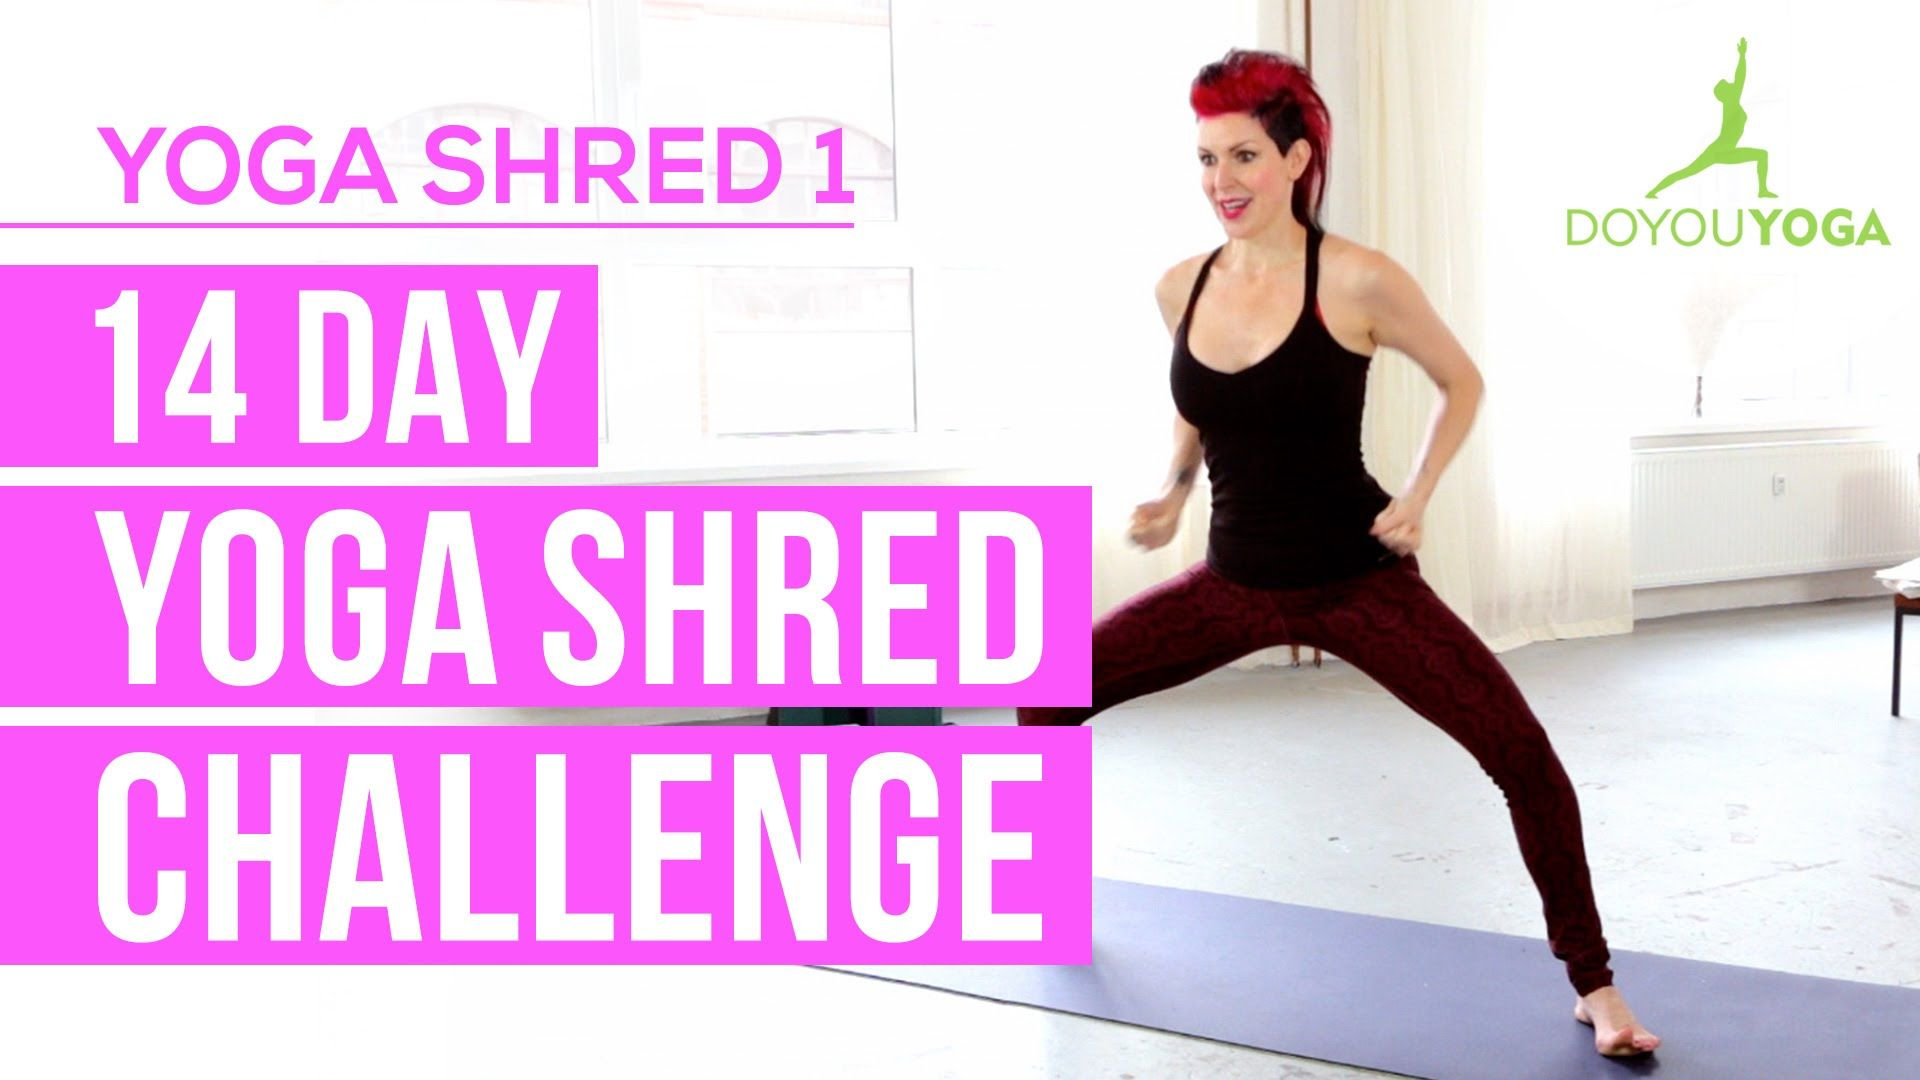 Cardio Yoga for Fat Burning - Day 1 - 14 Day Yoga Shred Challenge #cardioyoga